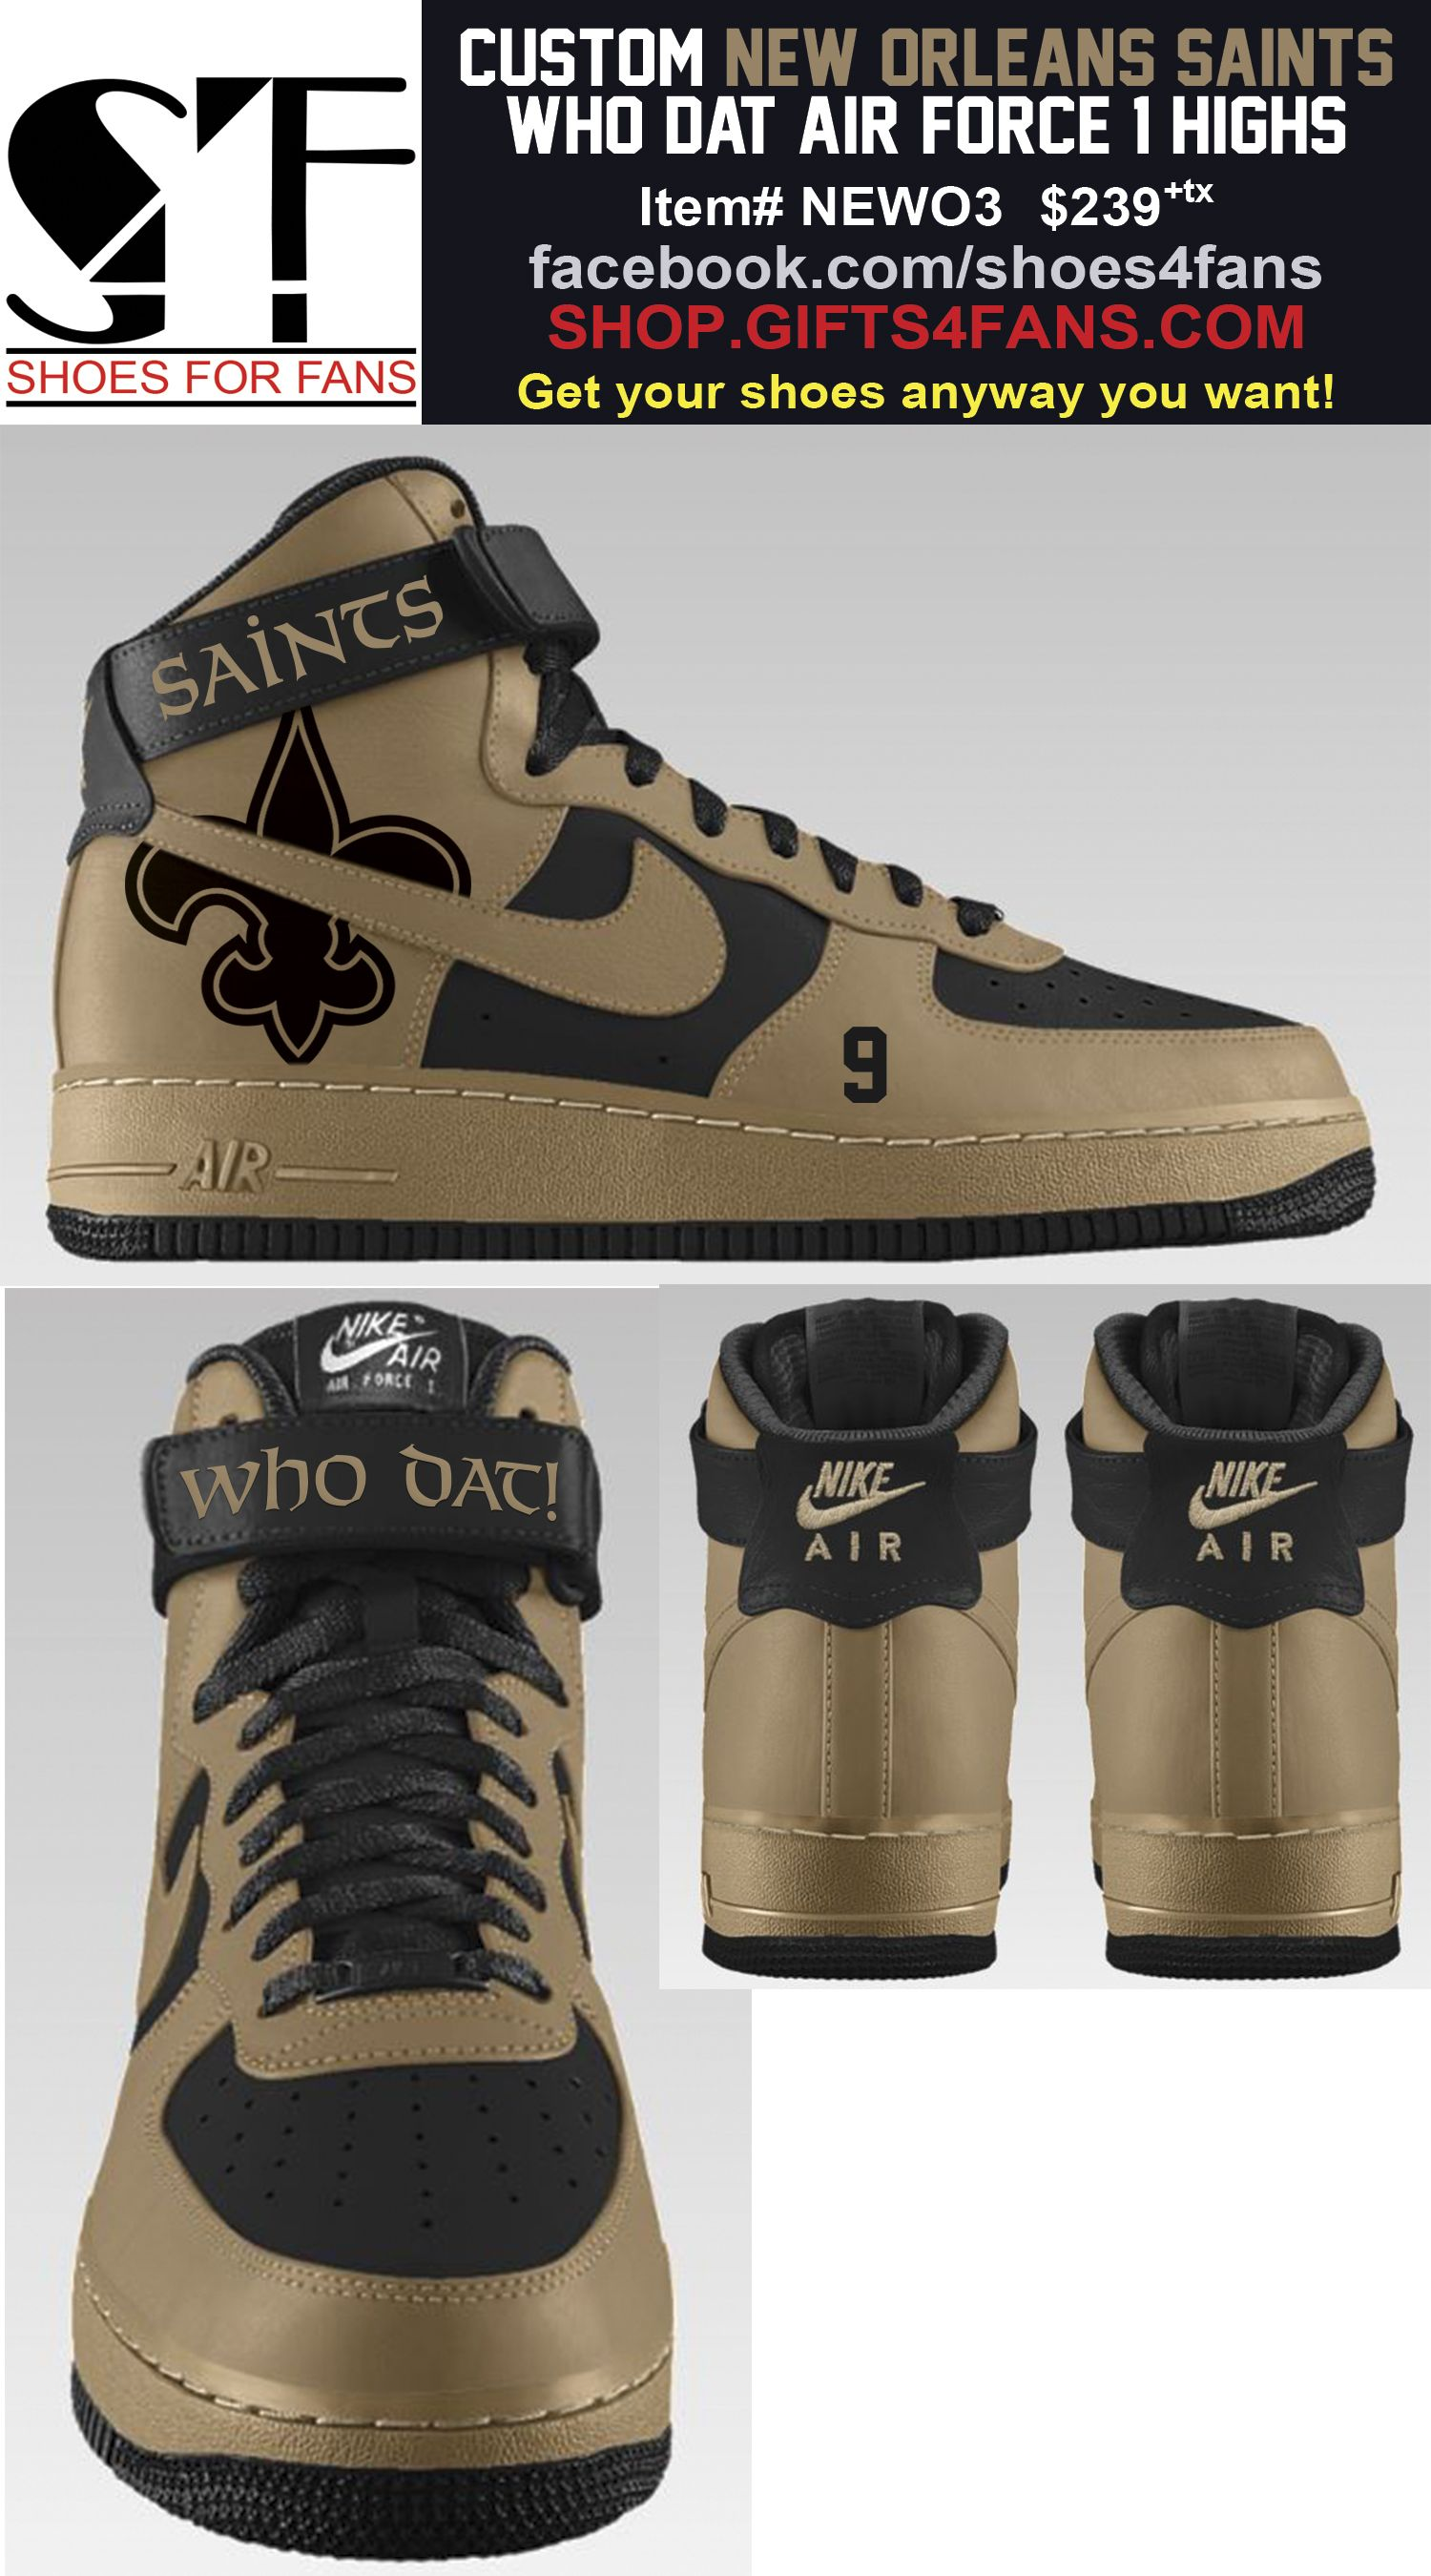 Pin by Shoes4Fans on New Orleans Saints Shoes  afb9375f3